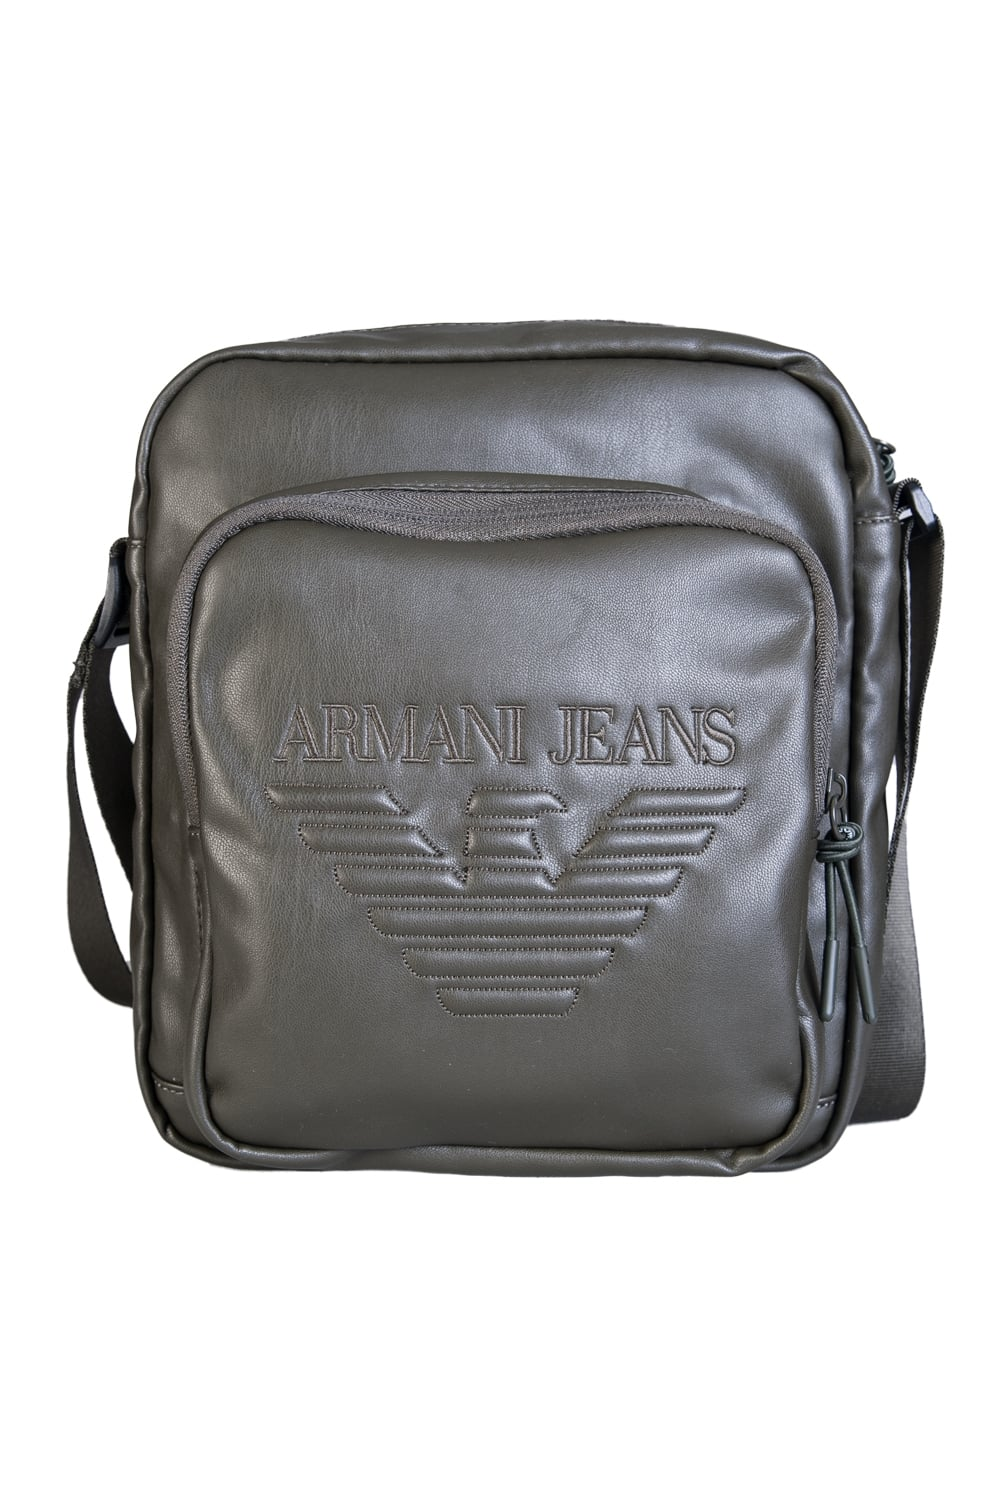 181ec288512 Armani Jeans Bag Messenger 932181 7A937 - Accessories from Sage Clothing UK